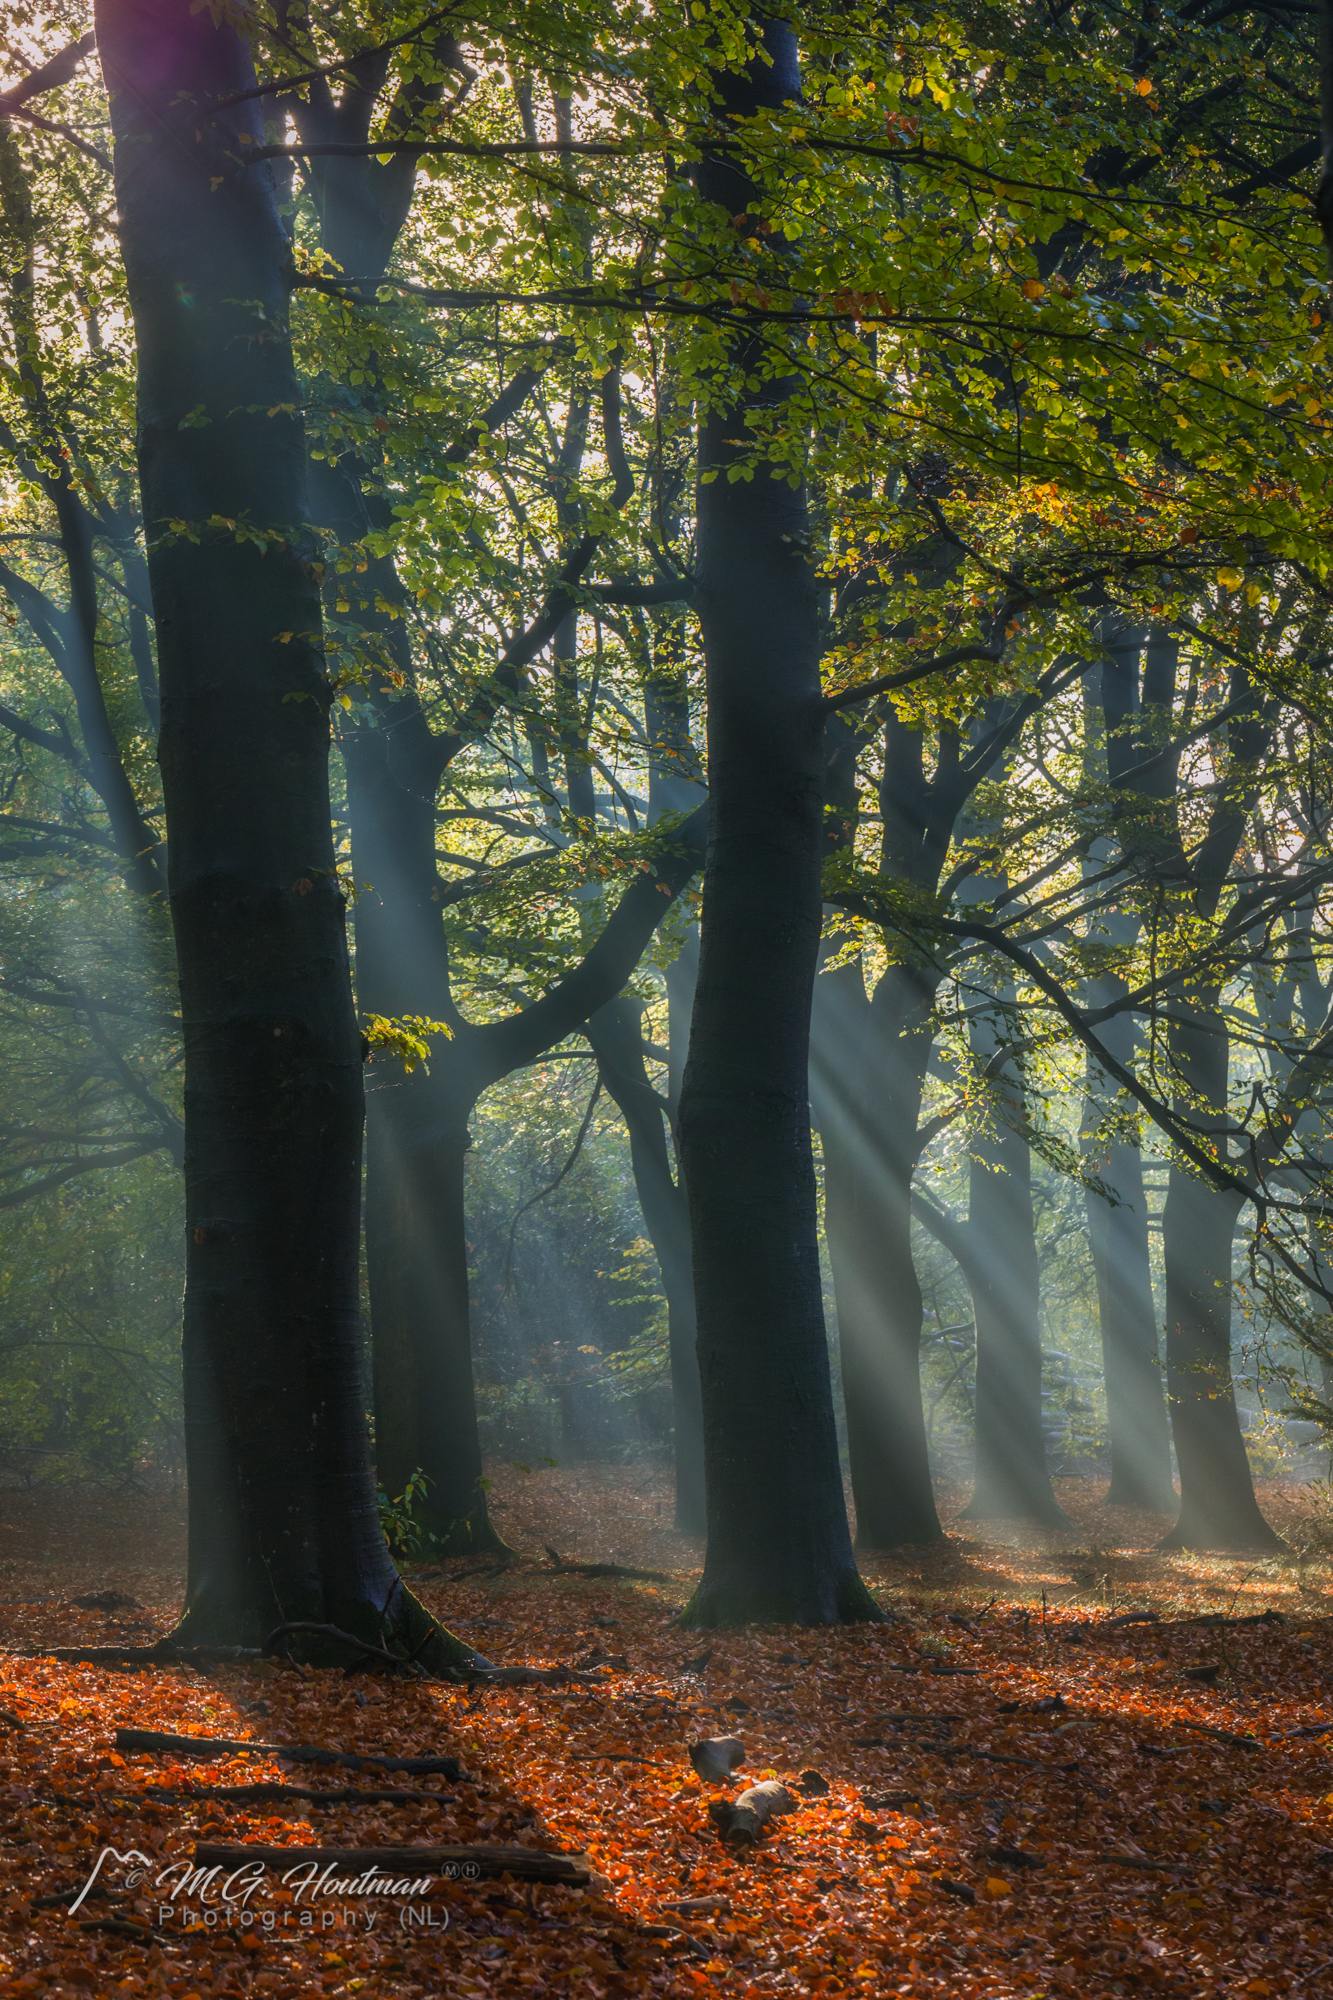 When the sun wakes up in the forest